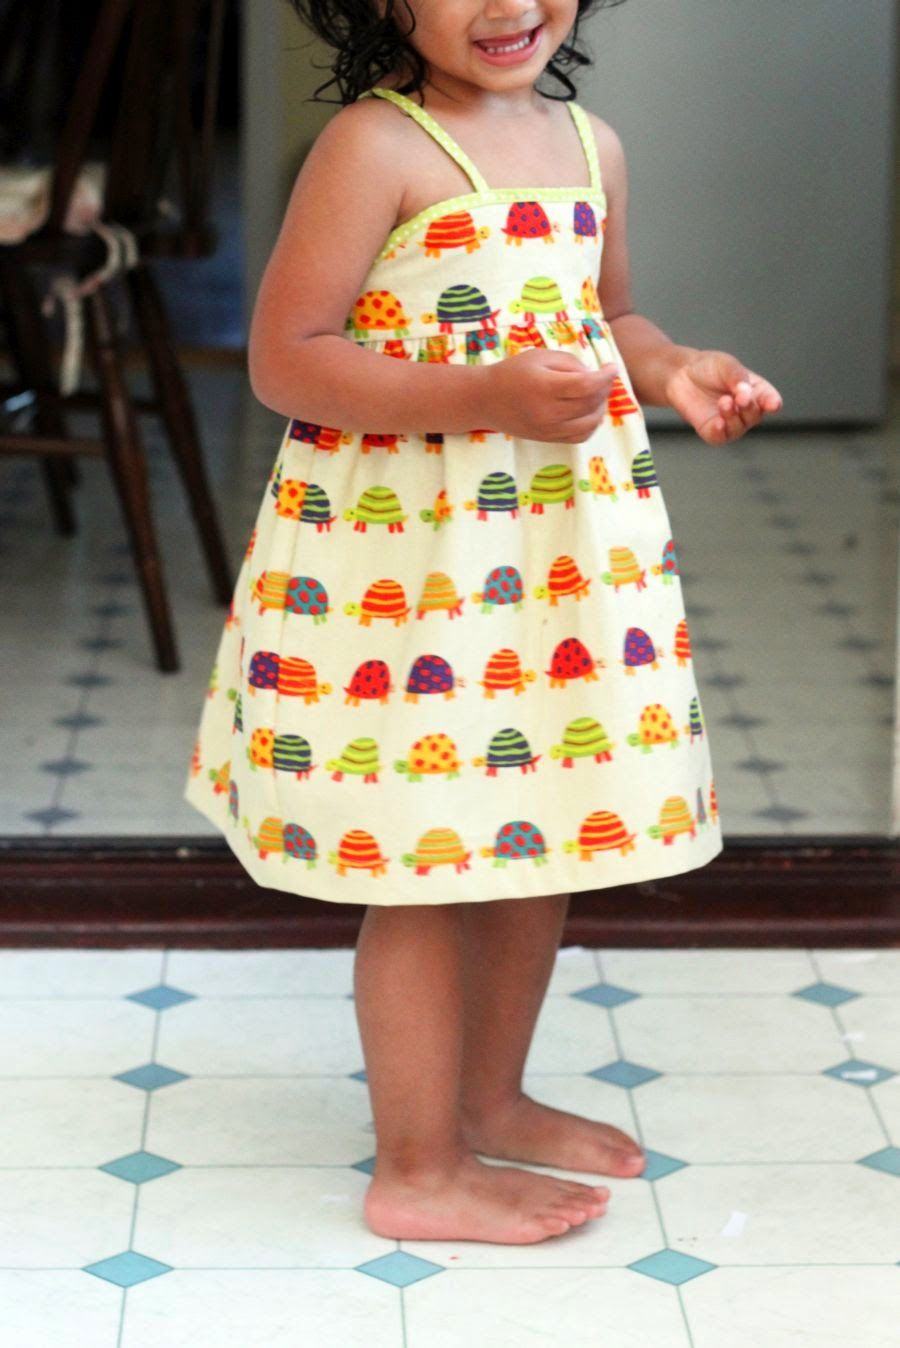 Simple Summer Dress for Girls – Follow this tutorial to learn how to sew a dress that will let her run and play in the summer sun.